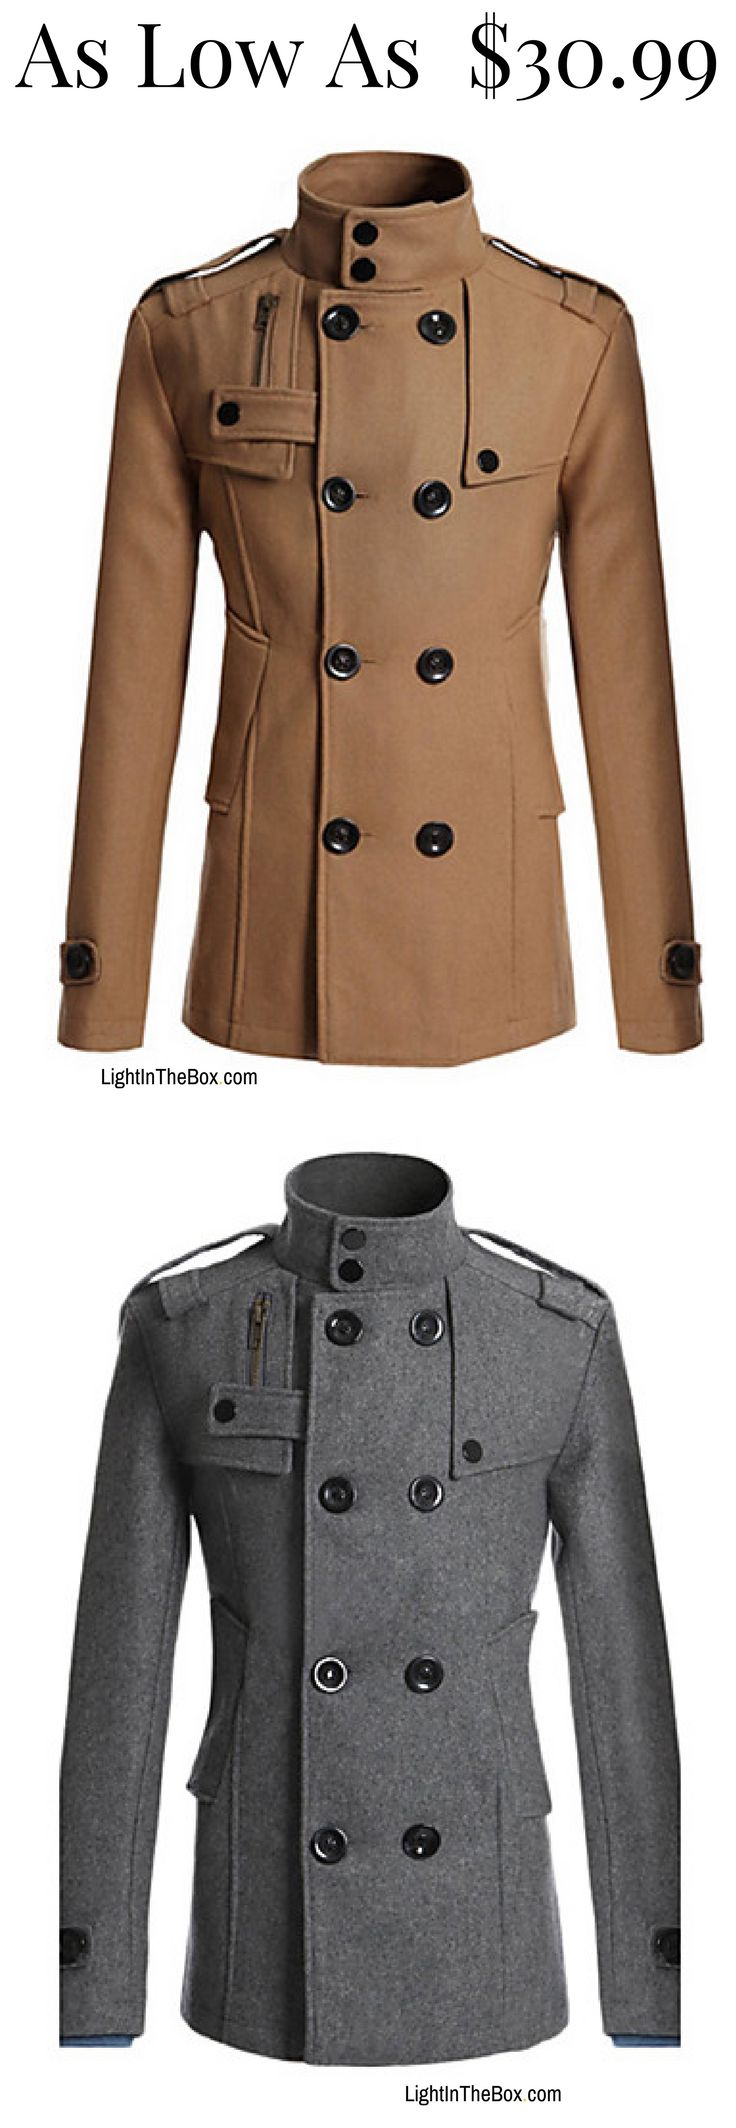 Casual camel button breast men coat for any occasion. Like it? click on the picture to shop it in brown, black and navy blue colours at just $30.99.